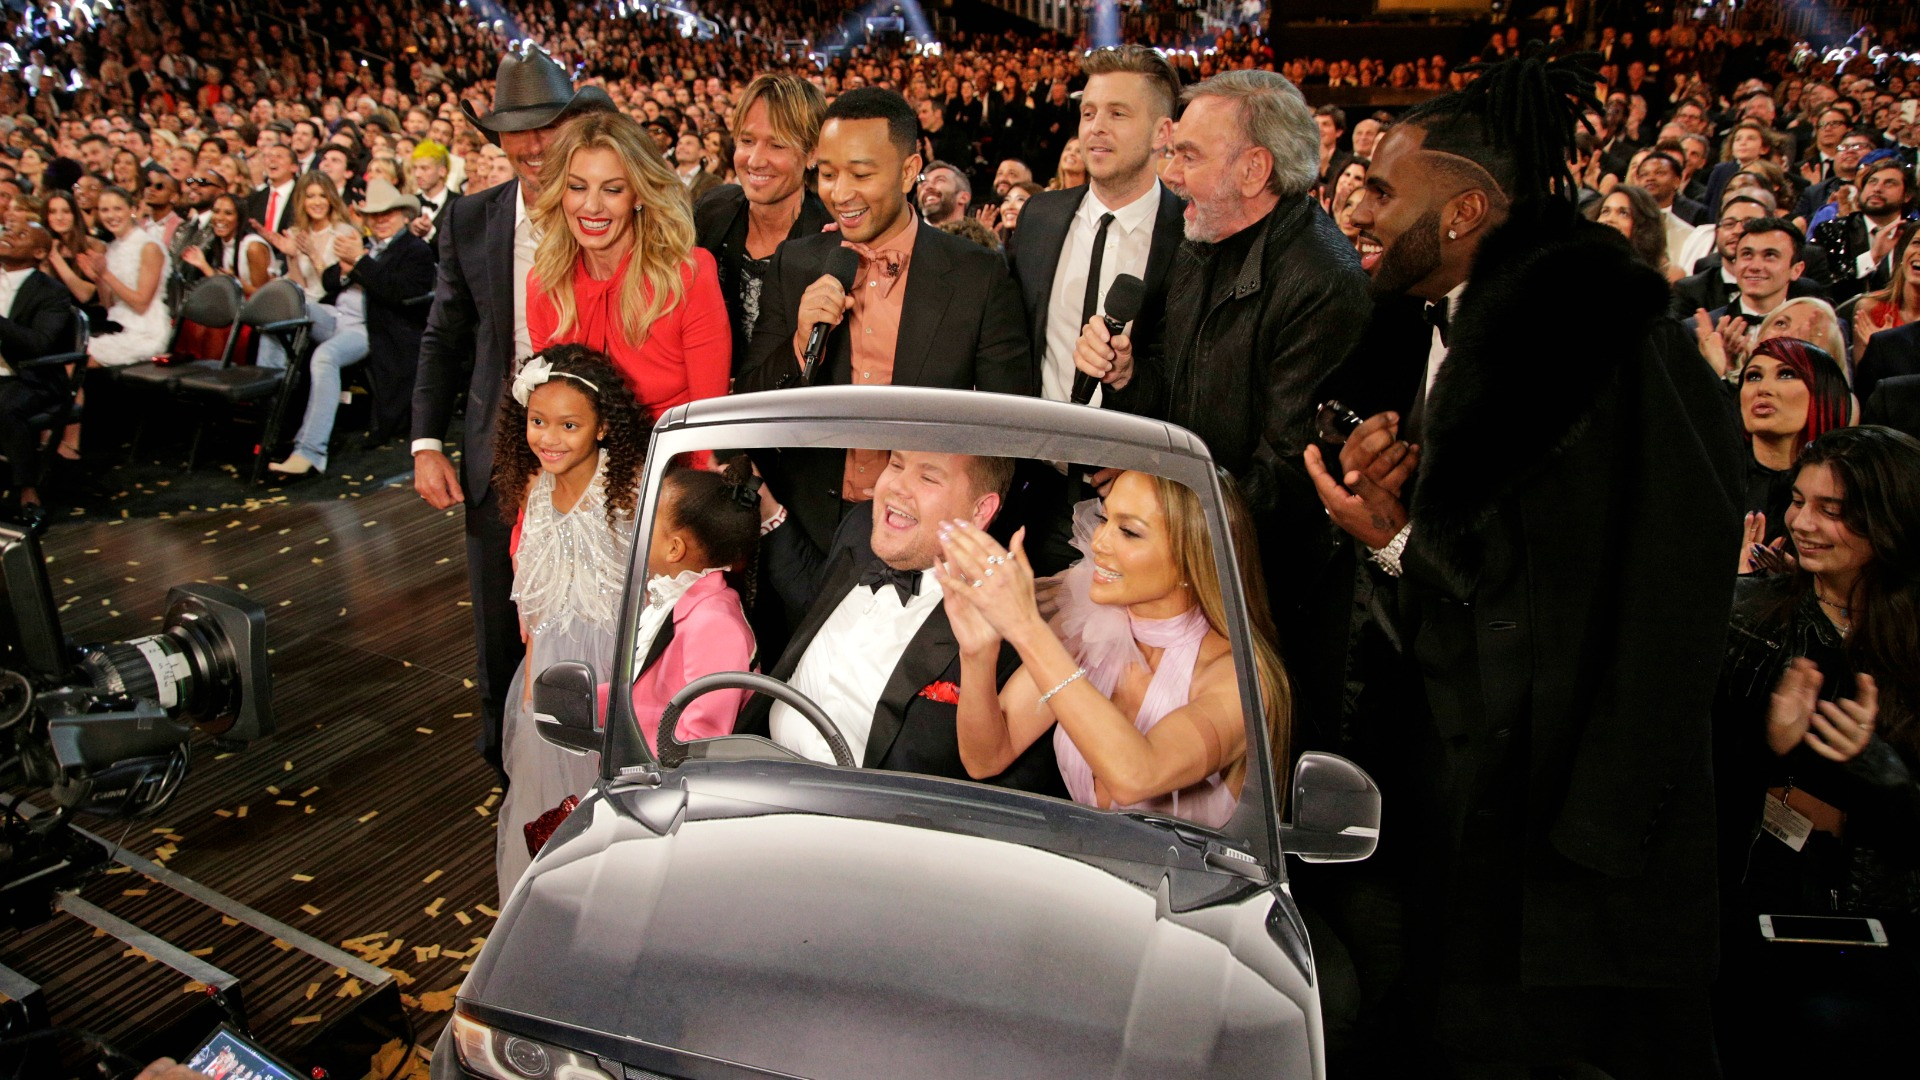 James Corden took a bevy of stars for a cardboard ride in an impromptu singalong of Carpool Karaoke of